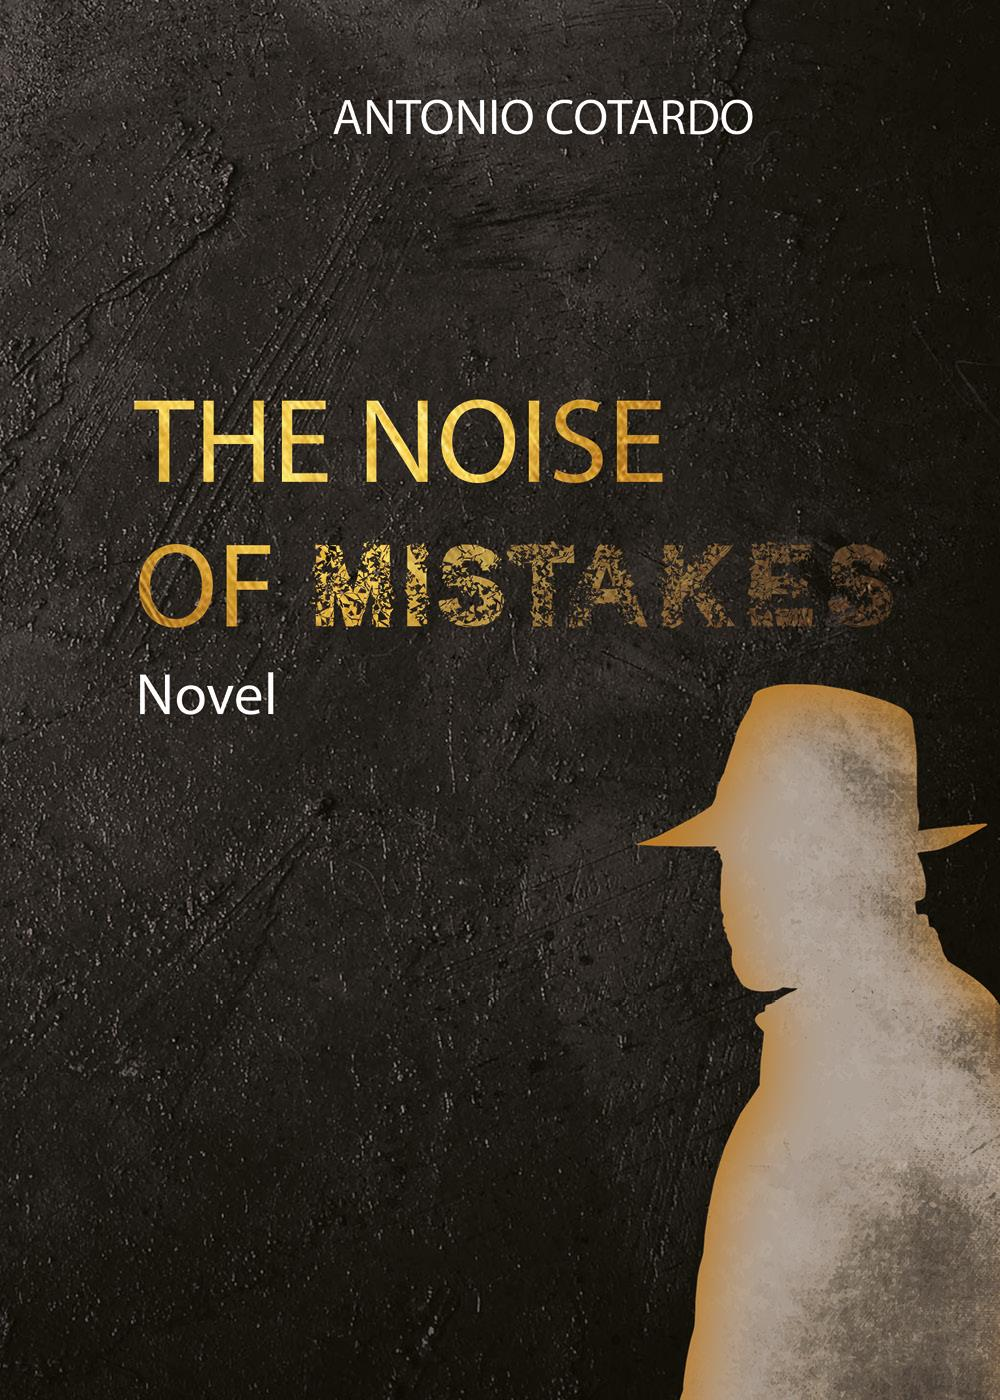 The noise of mistakes